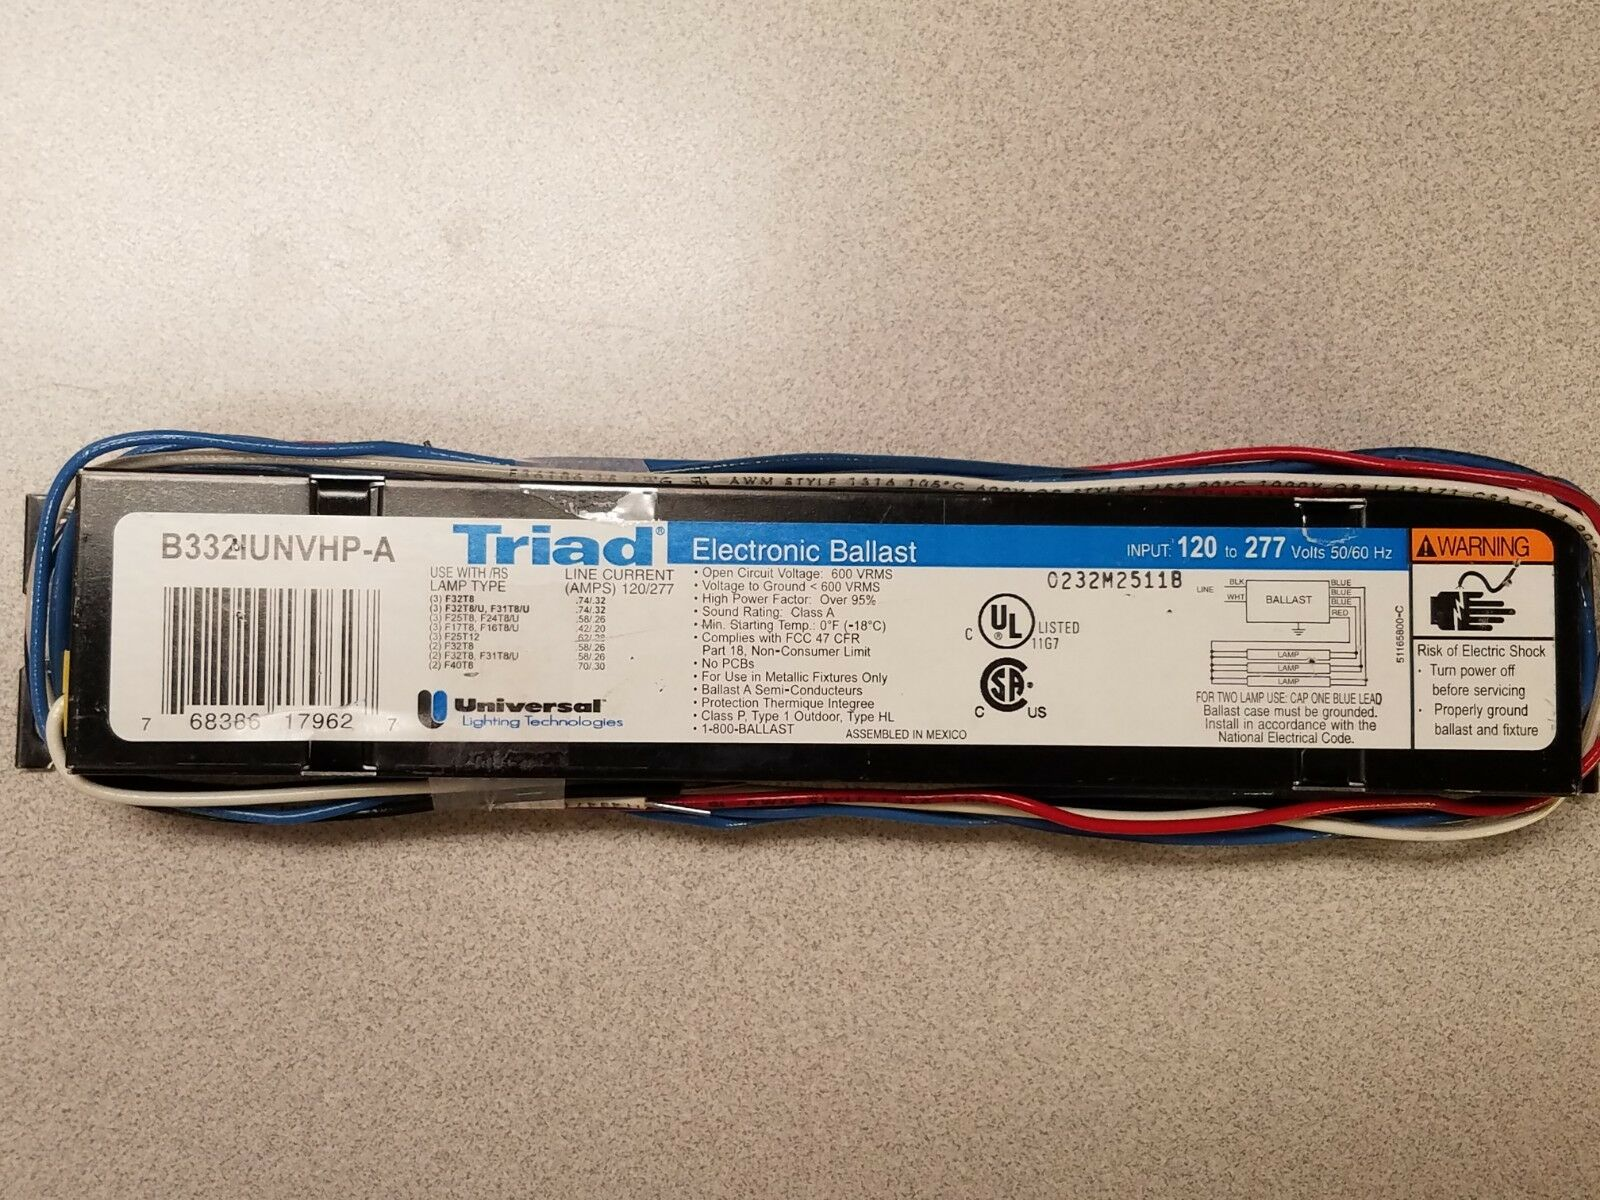 B332iunvhp-a Triad Electronic Ballast for 3 F32t8 Lamp 120-277v on